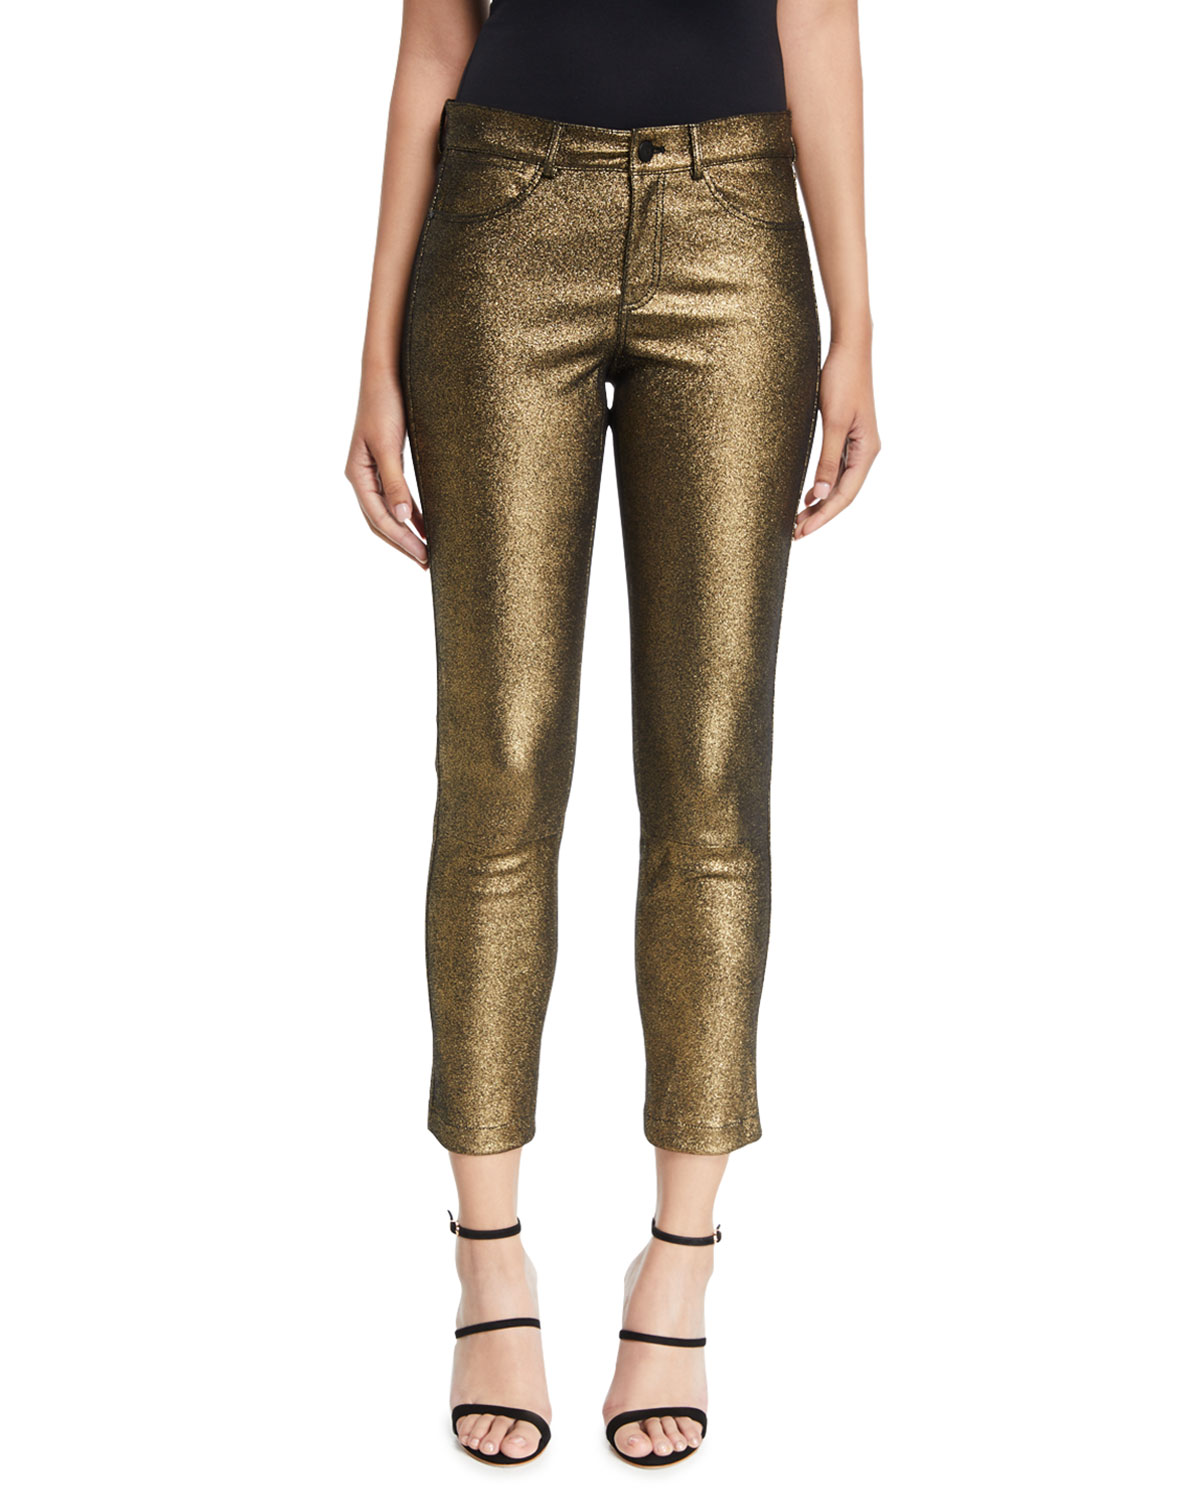 Mercer Cropped Metallic Leather Skinny Pants in Gold